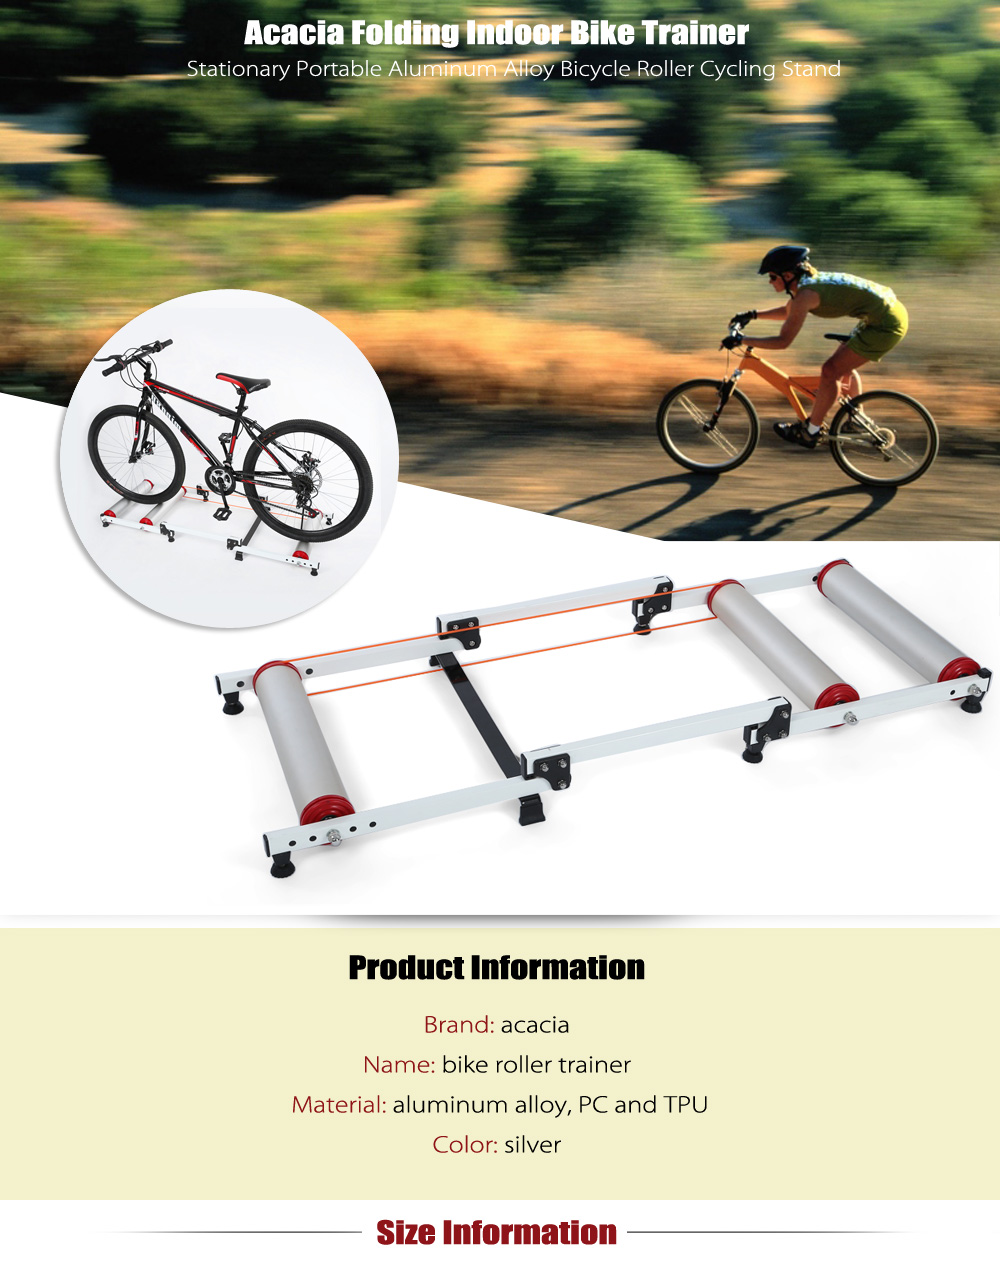 Acacia Folding Stationary Indoor Bike Trainer Portable Aluminum Alloy Bicycle Roller Cycling Stand